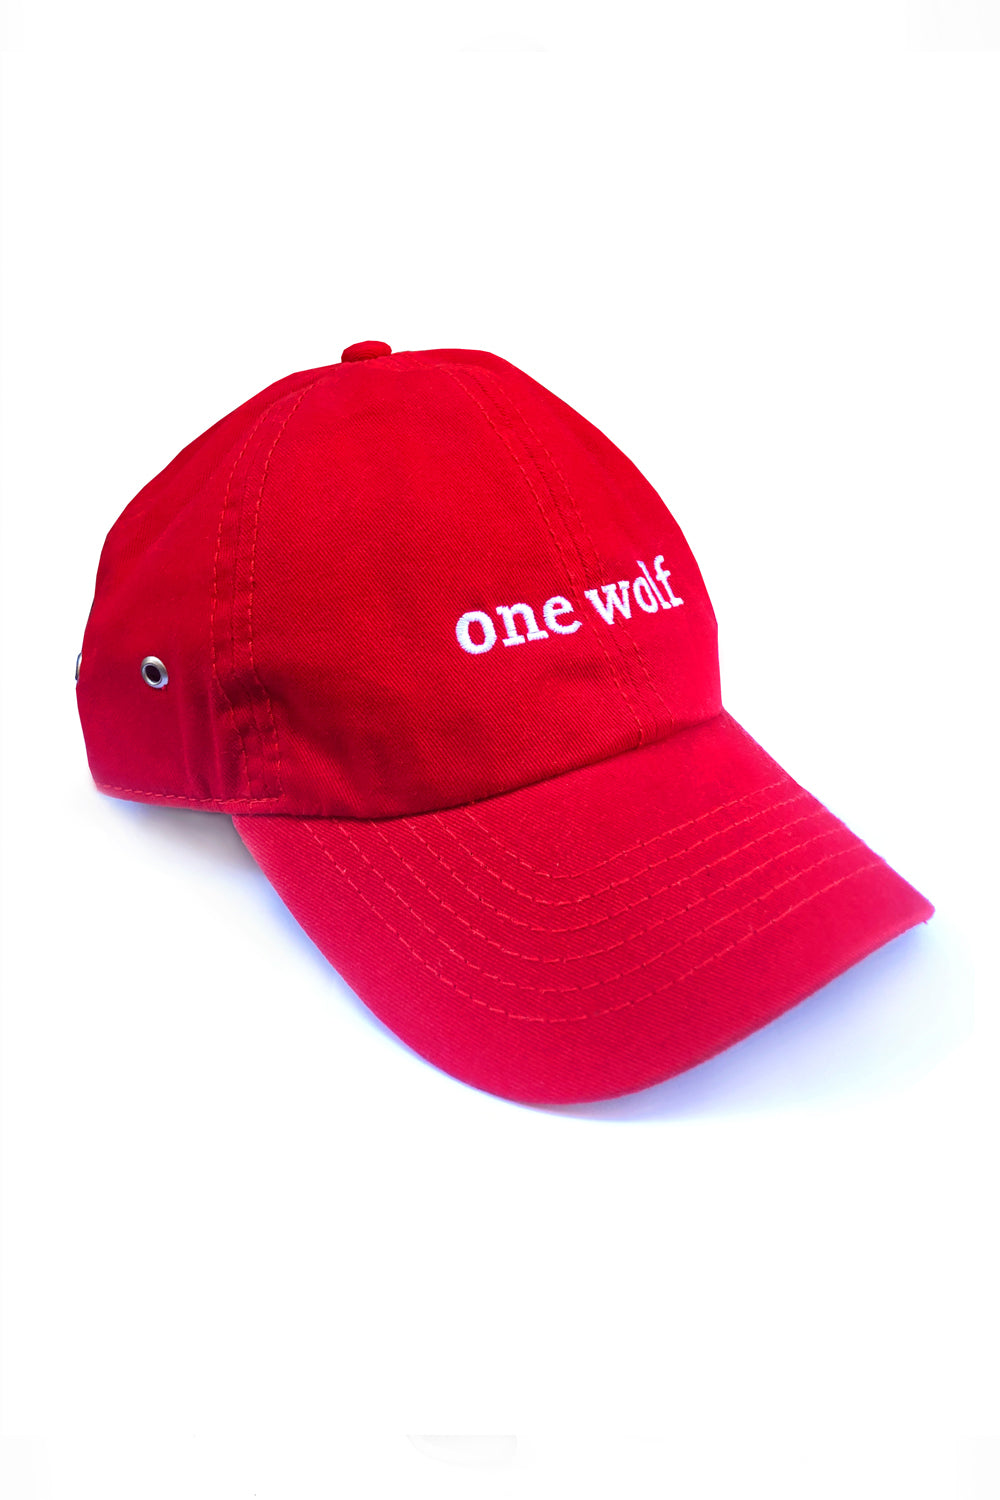 OUTSIDER Cap red - One Wolf